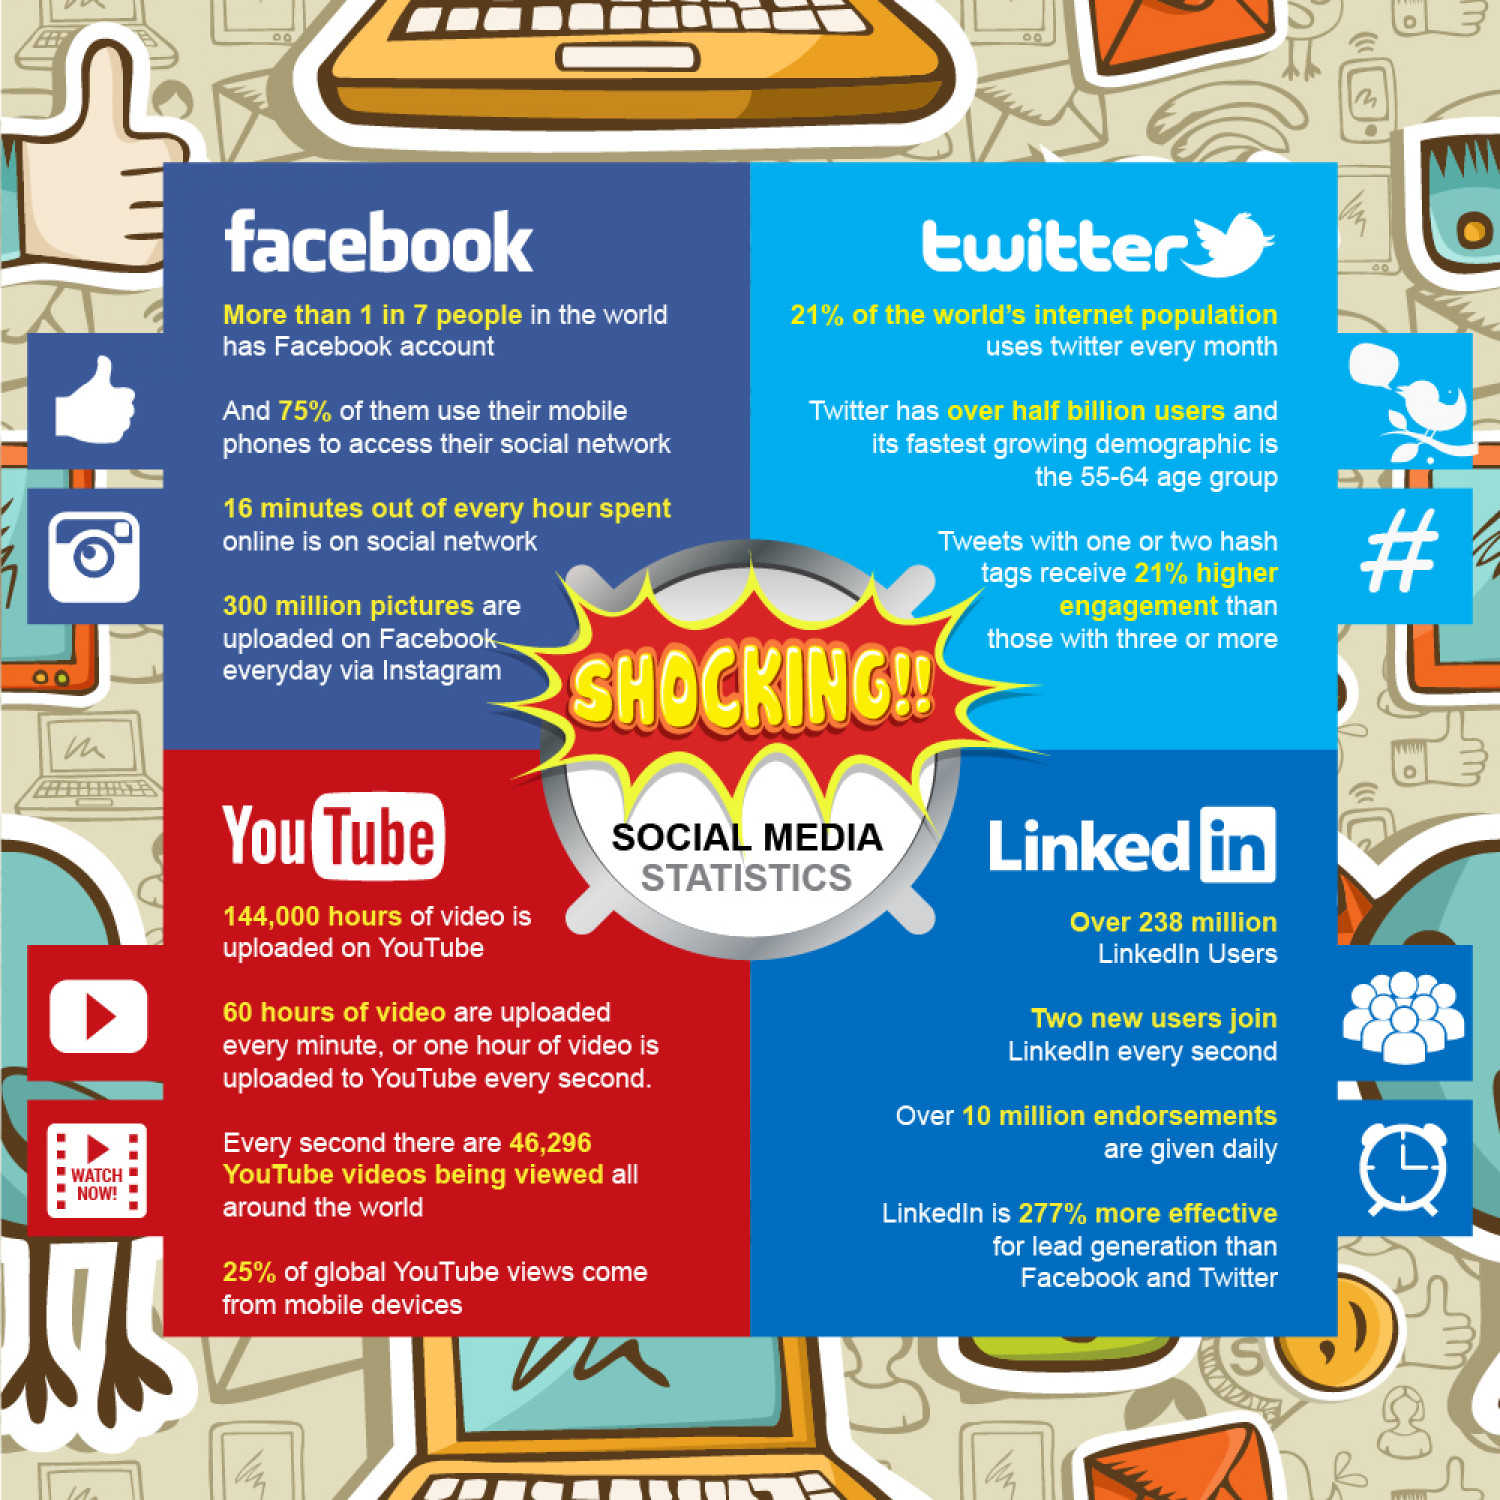 Shocking Social Media Statistics Infographic